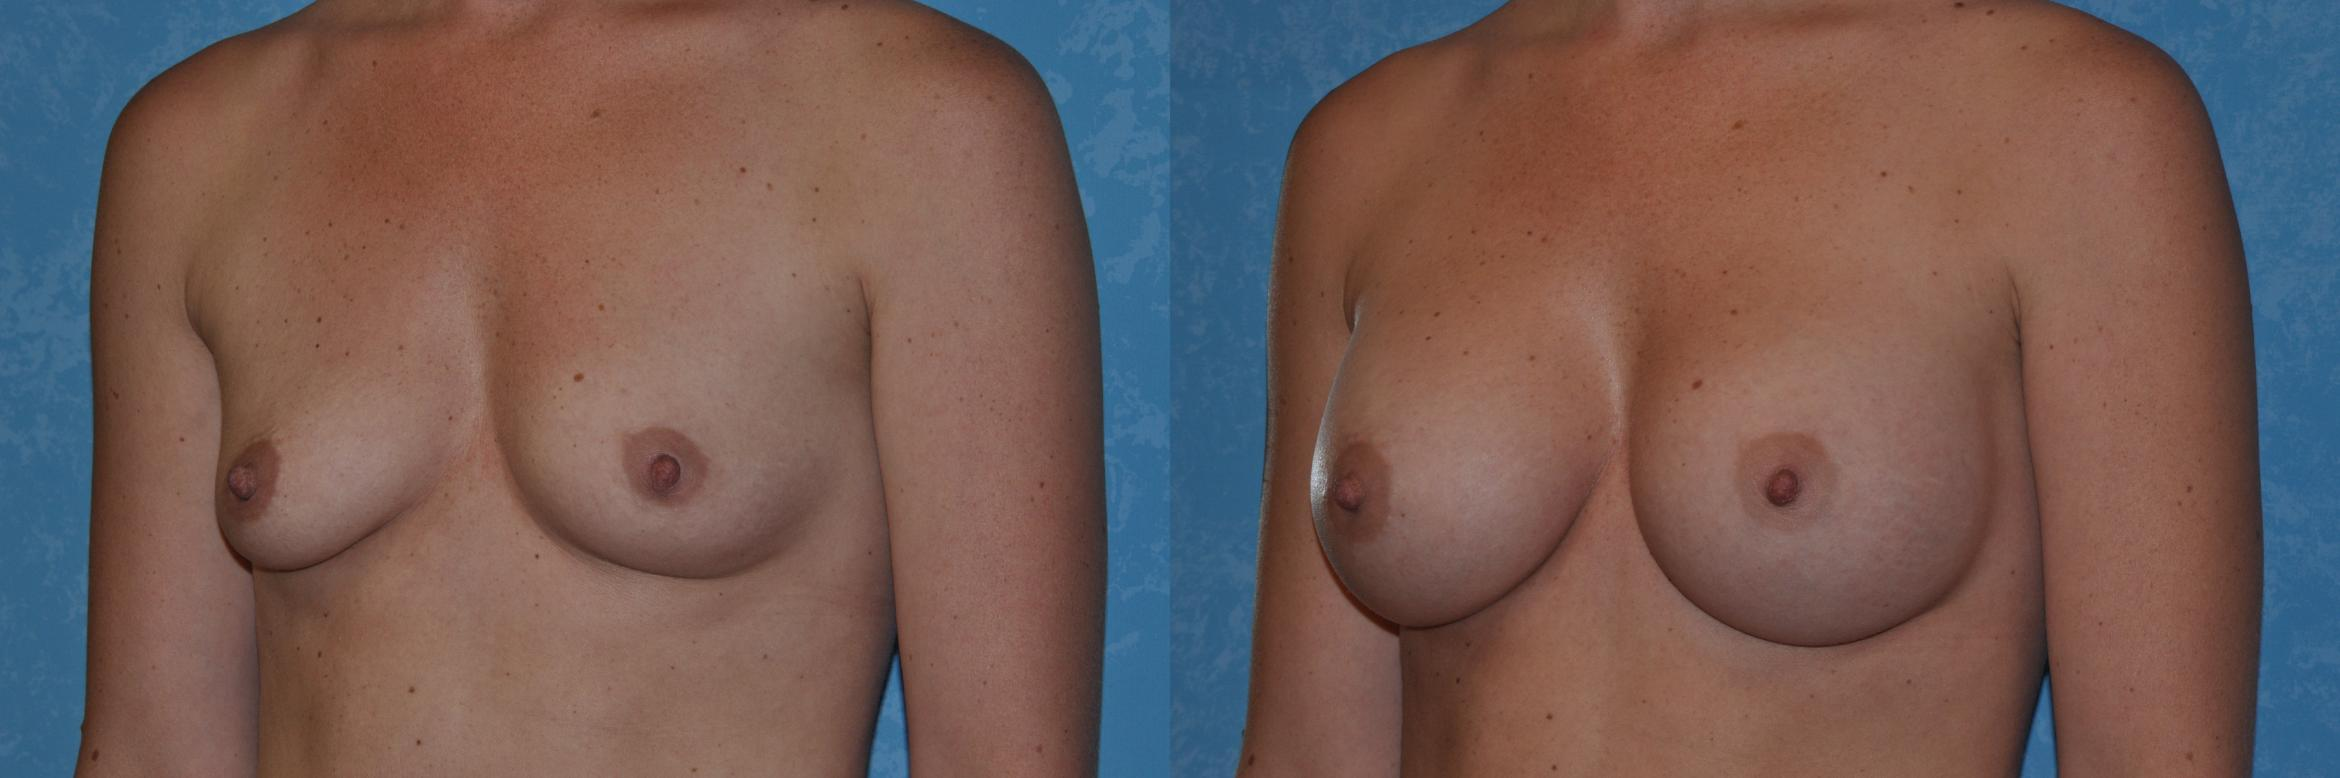 Breast Augmentation Before & After Photo | Toledo, Ohio | Dr. Craig Colville